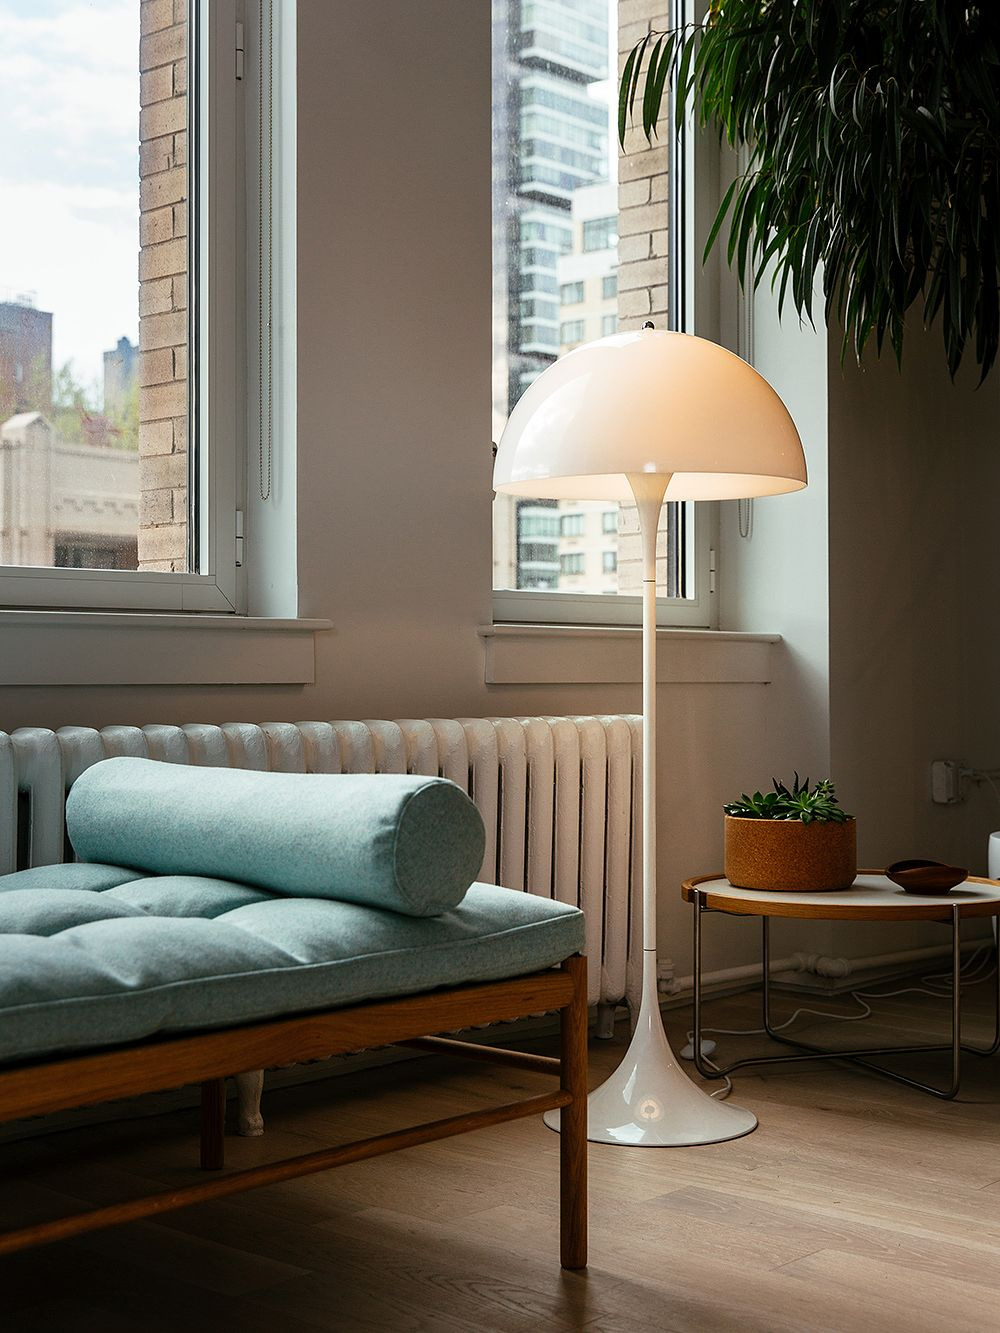 interior design lighting tips. It\u0027s Better Suited For Natural Light And Very Bright Spaces. A Warmer Color Temperature Feels More The Less There Is. Interior Design Lighting Tips